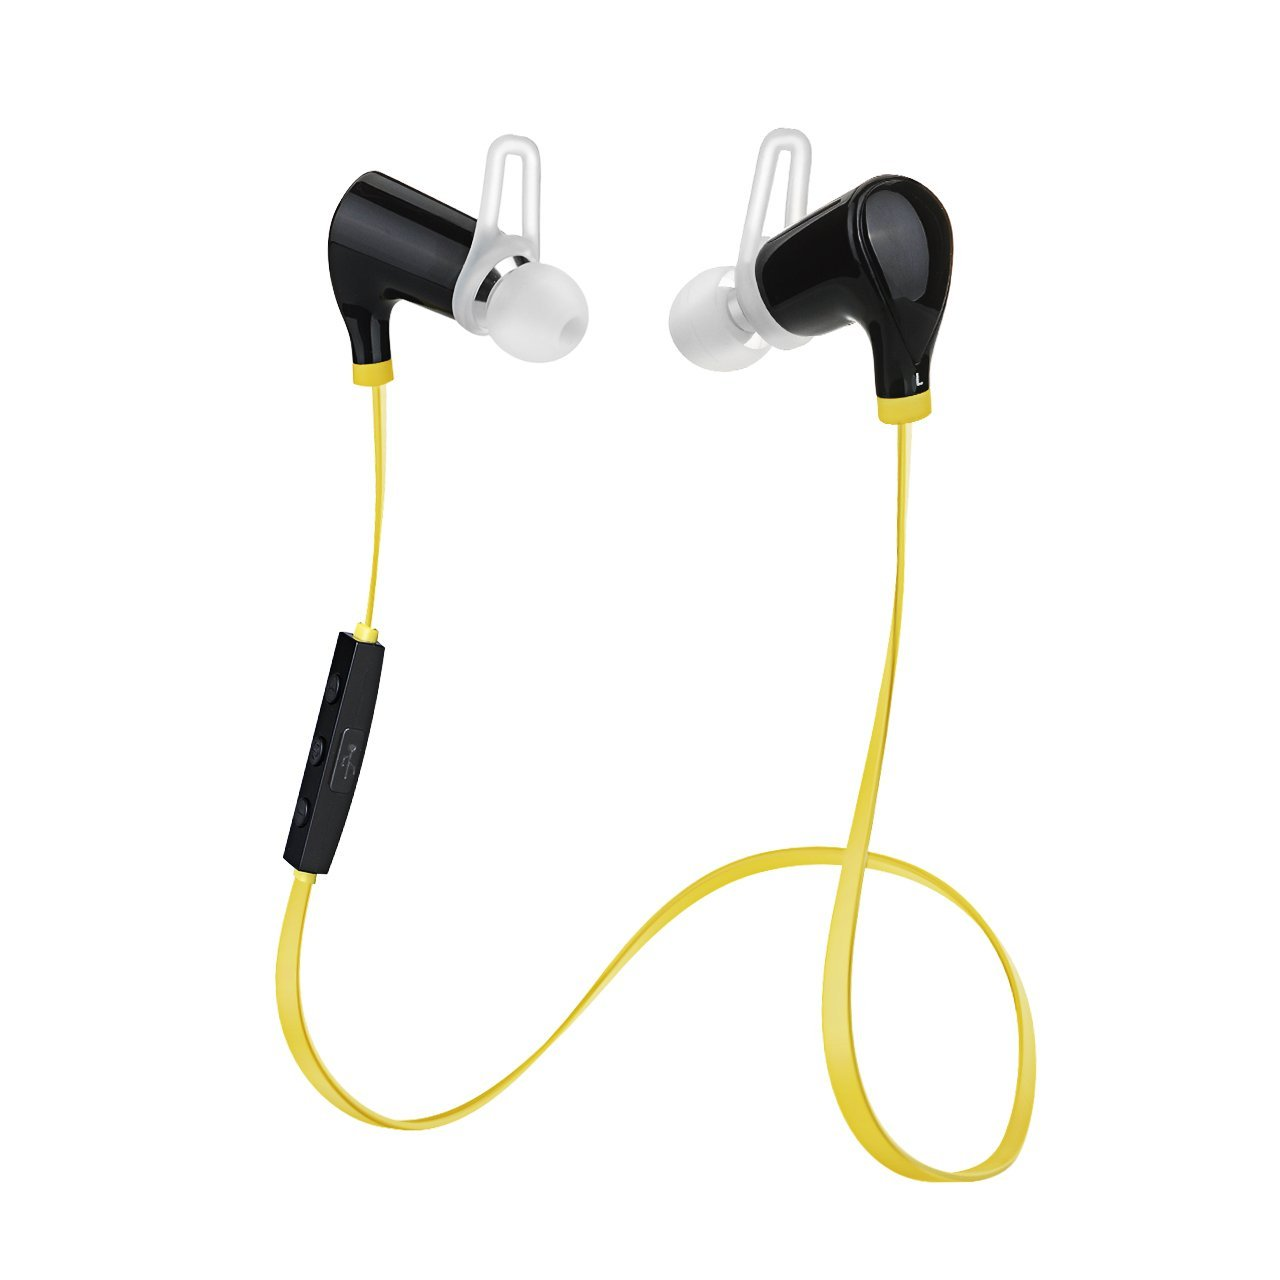 VicTsing QCY Bluetooth Headphone W/ Microphone Lightweight Wireless Stereo Earbuds